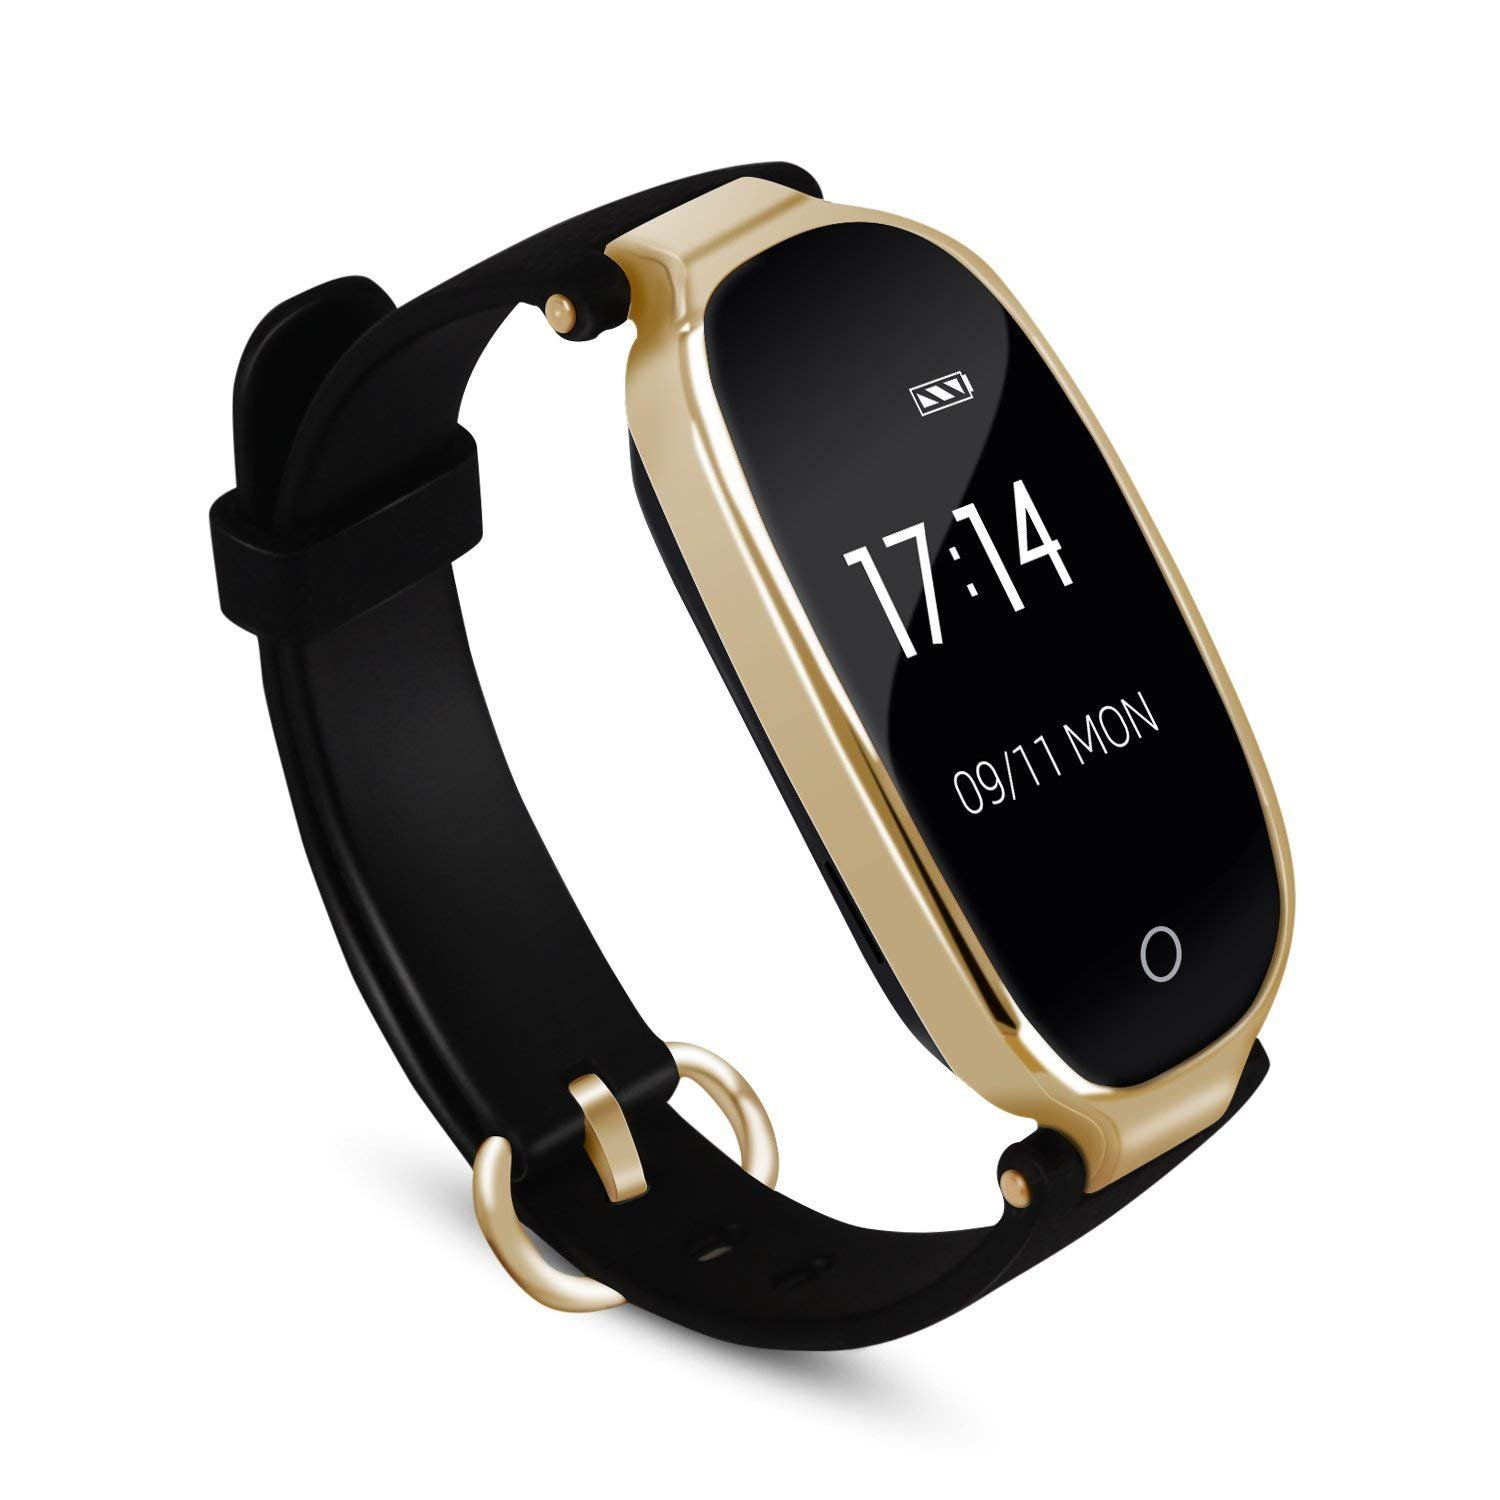 Fitness Tracker,Women Smart Fitness Watch, Heart Rate Monitor Smart Bracelet IP67 Waterproof Smart Bracelet with Health Sleep Activity Tracker Pedometer for Smartphone.